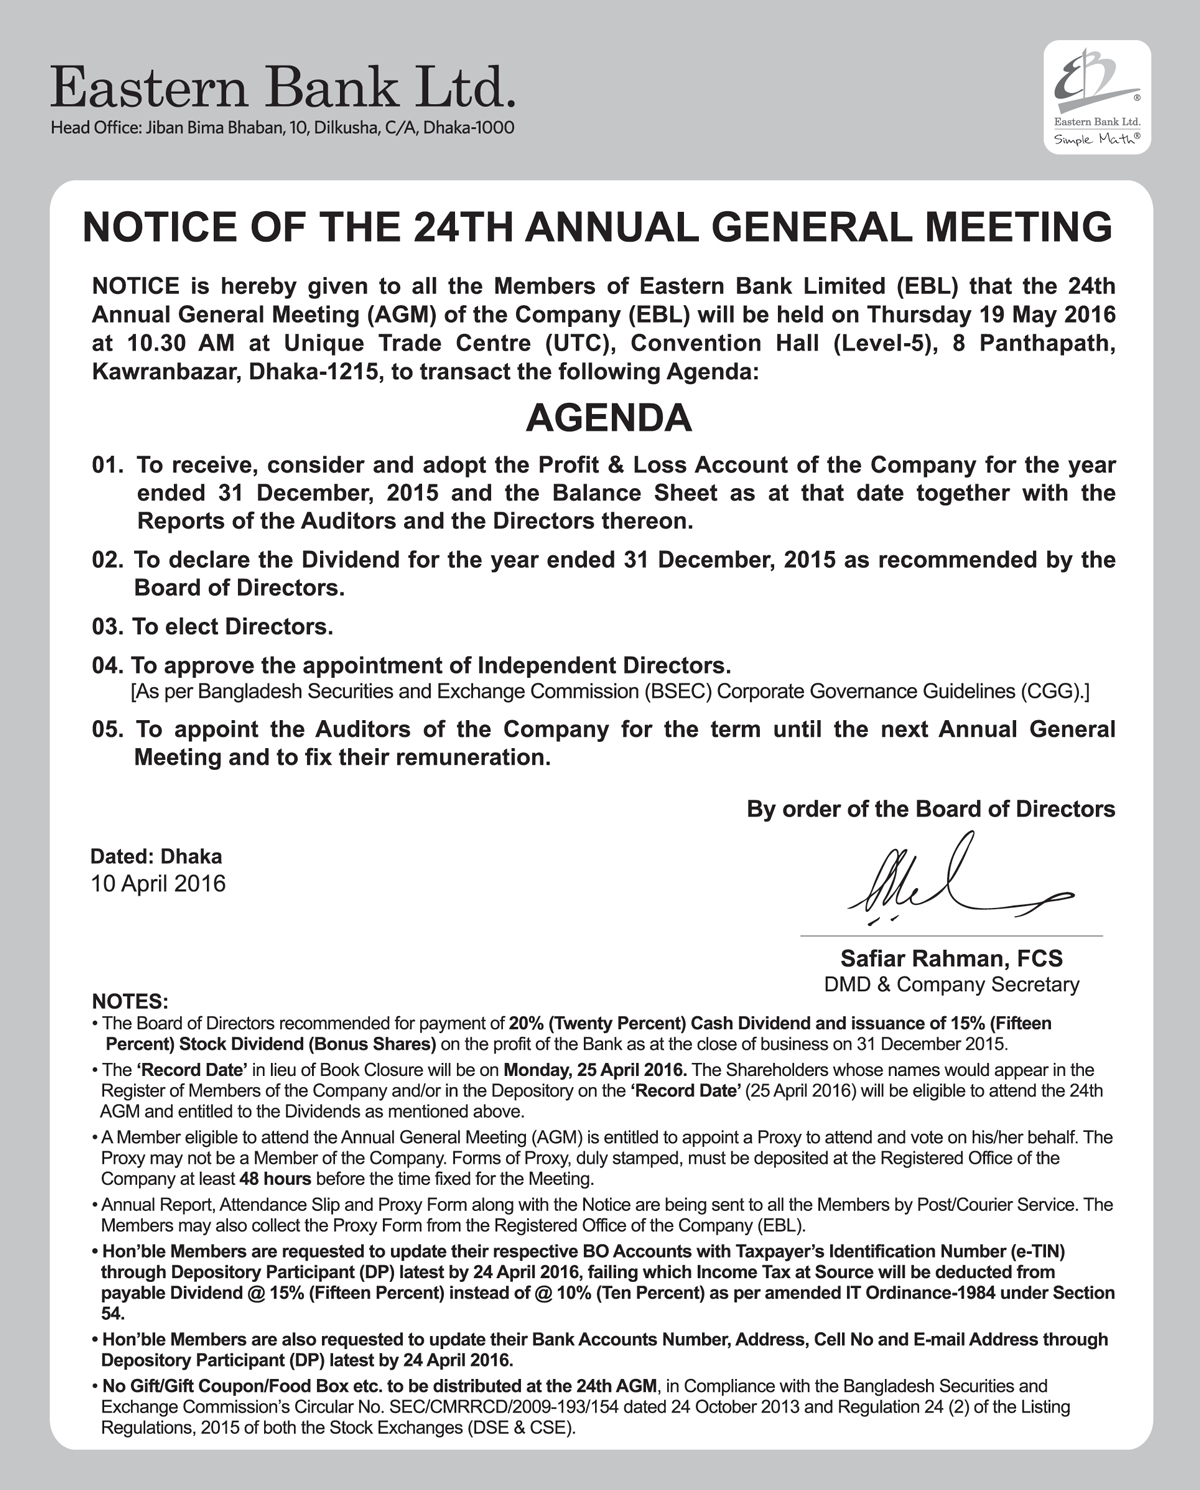 Eastern-Bank-AGM-Notice-1